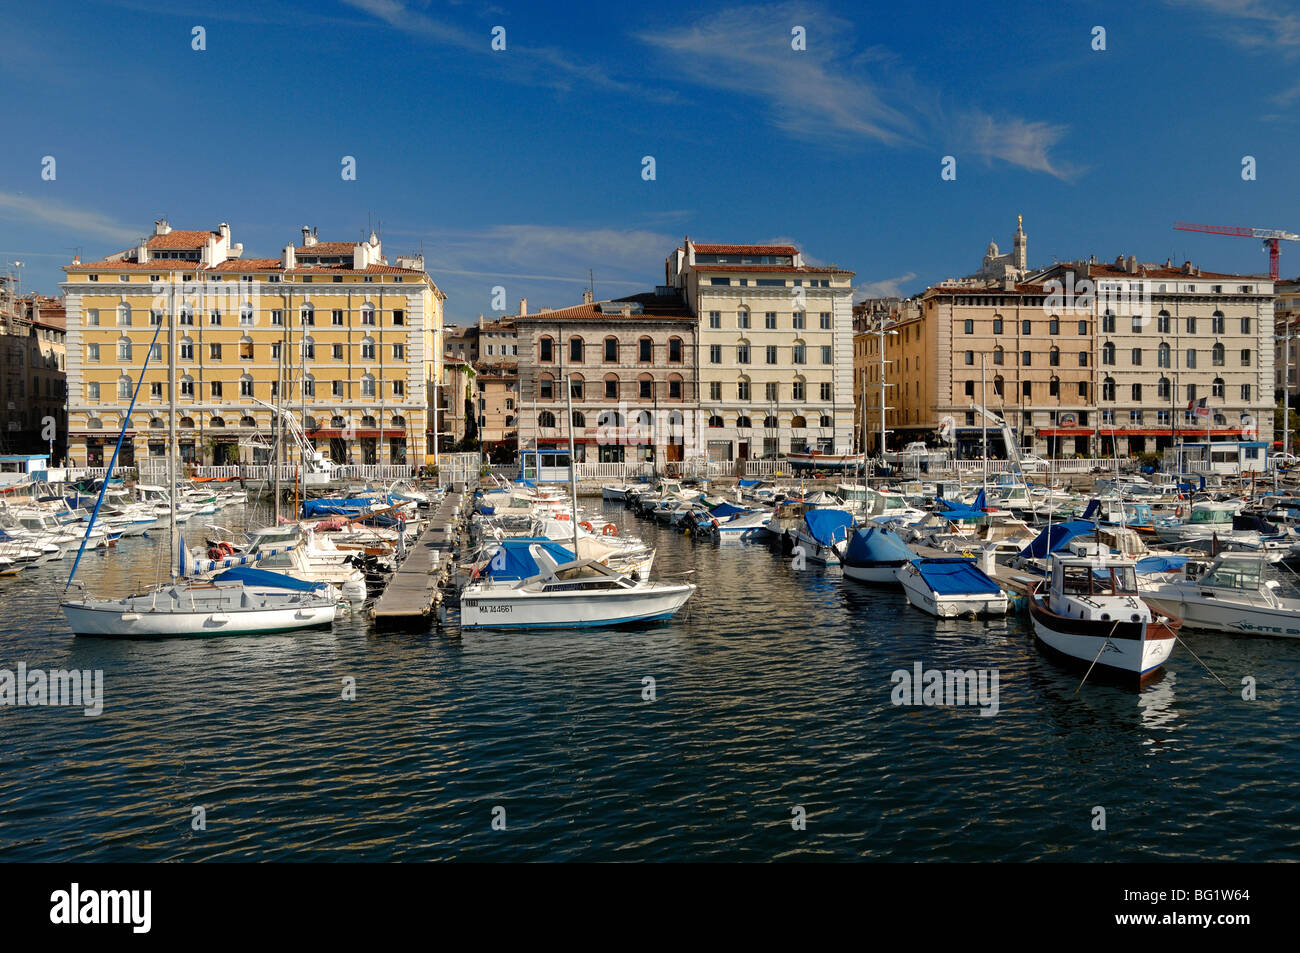 Quai du Rive Neuve Quay, Old Port or 'Vieux Port', with Yachts in Marina, Harbour or Harbor, Marseille or - Stock Image